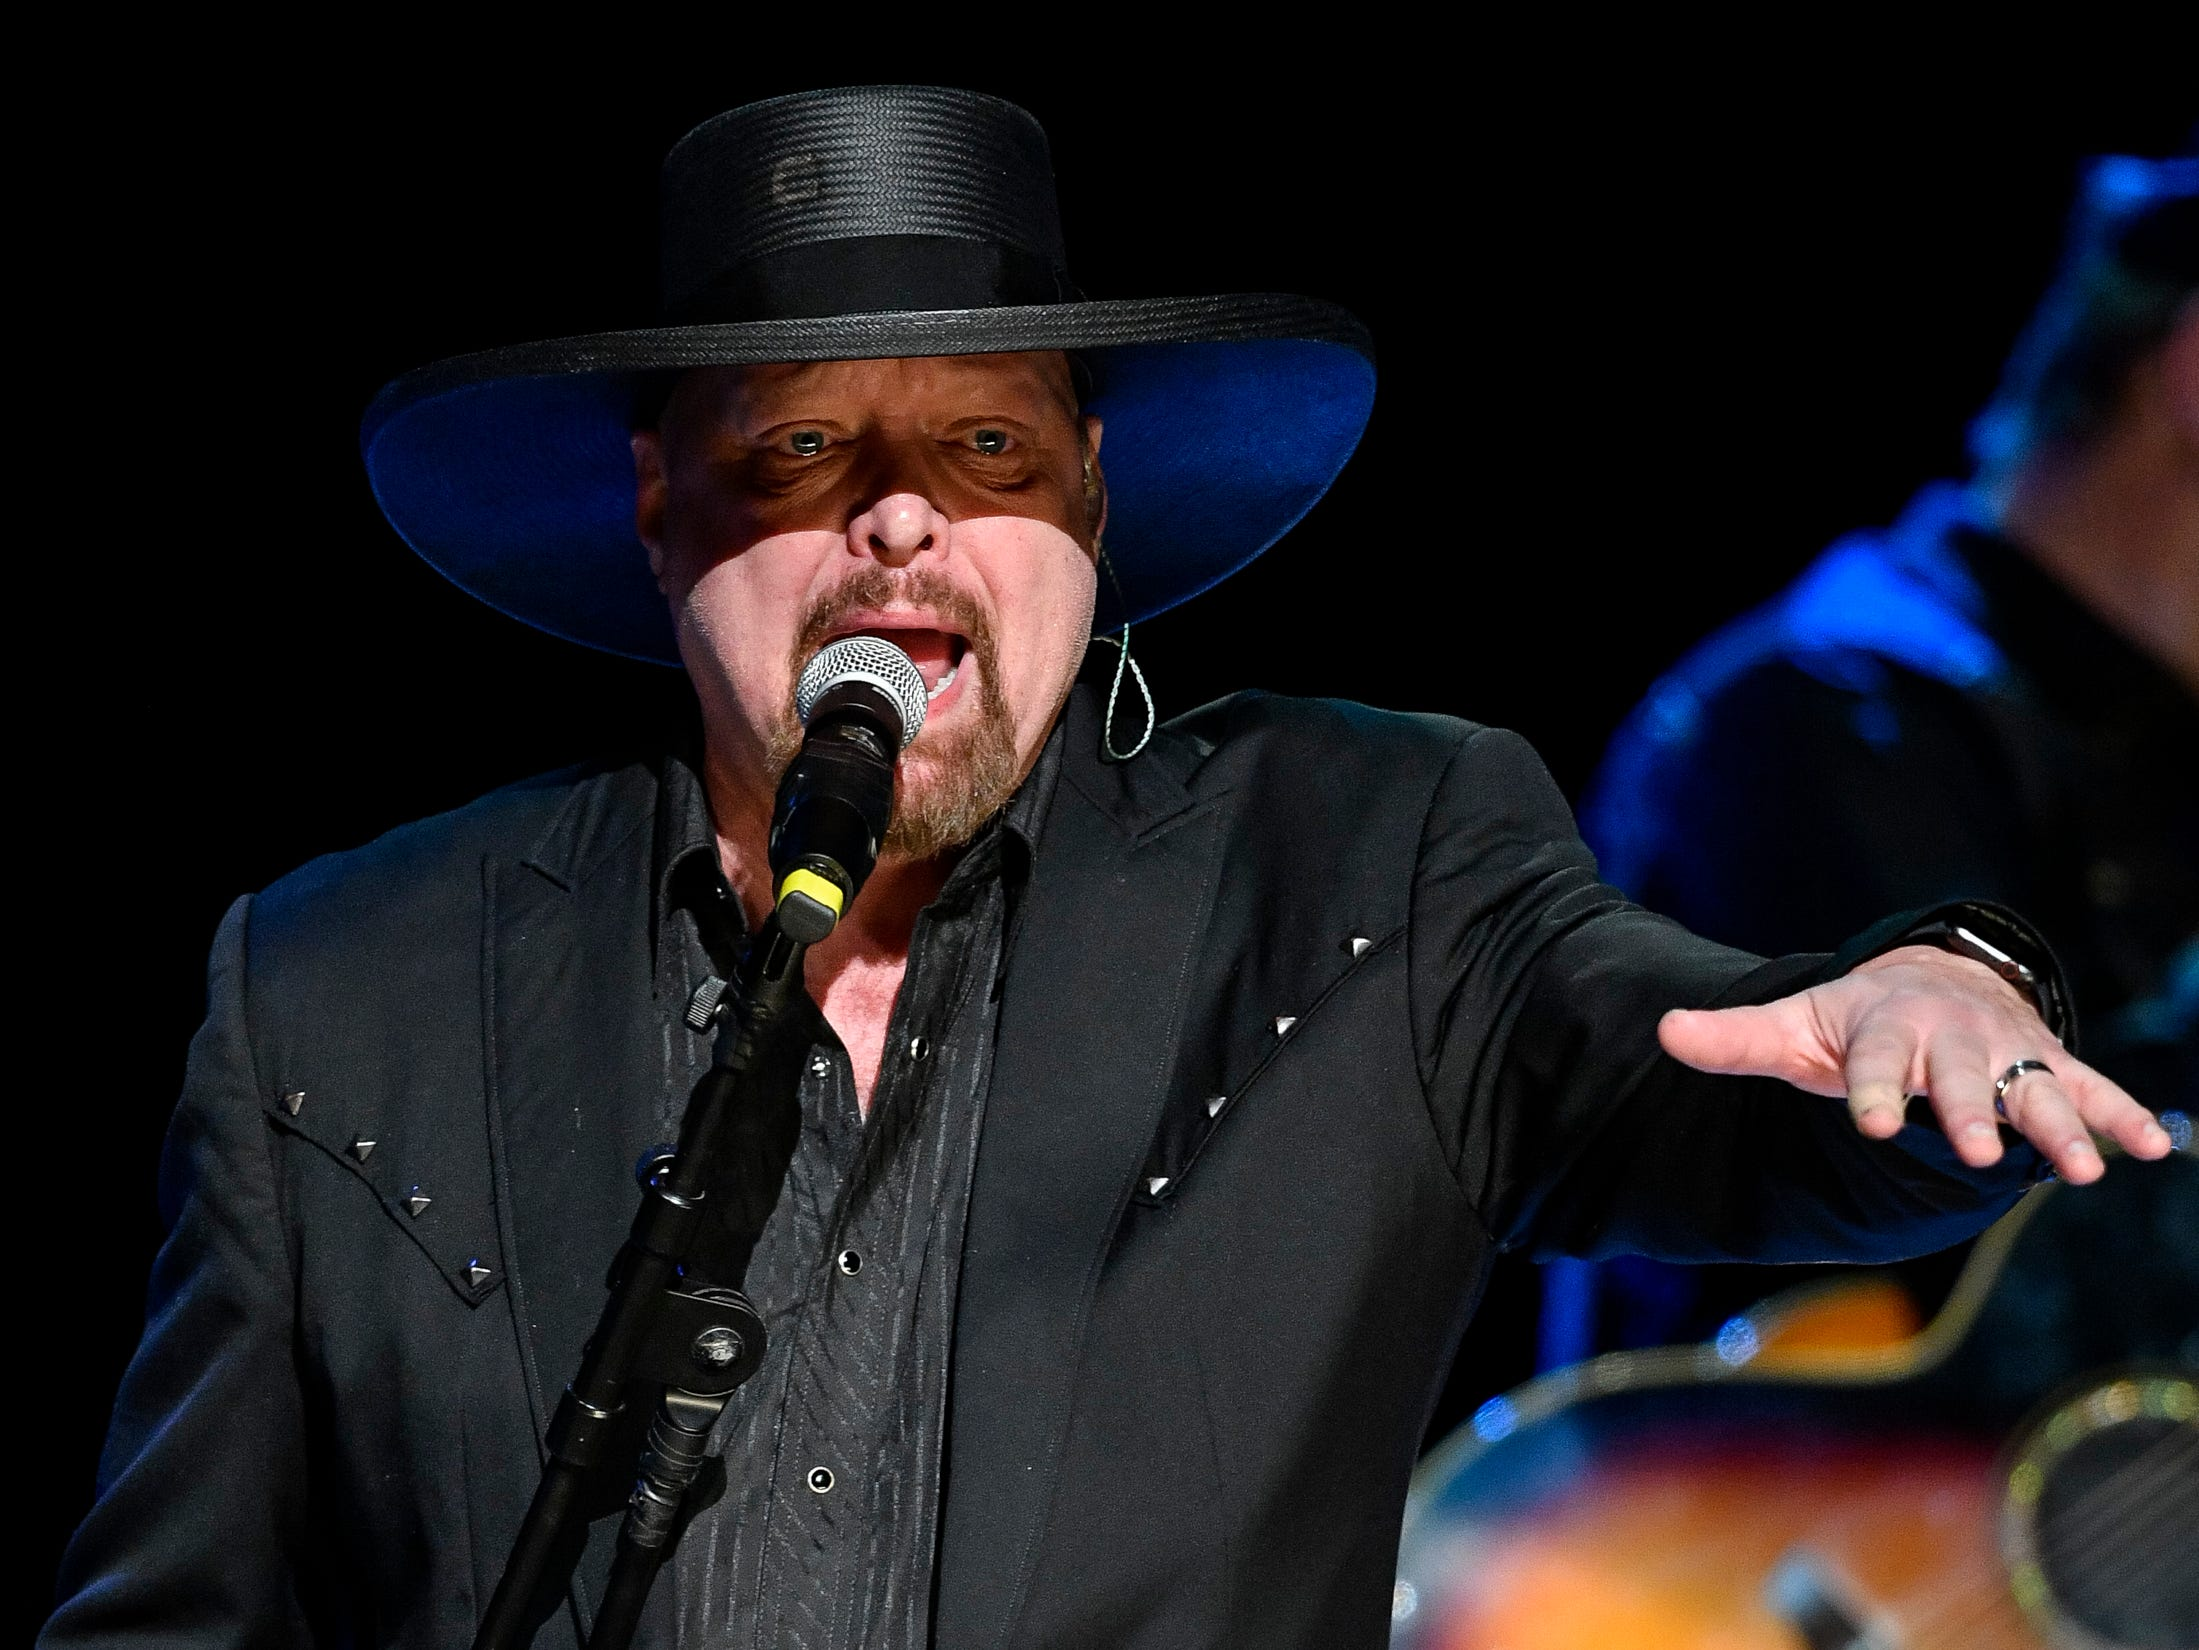 Eddie Montgomery performs during the C'Ya On The Flipside Benefit Concert at the Grand Ole Opry House in Nashville, Tenn., Wednesday, Jan. 9, 2019.